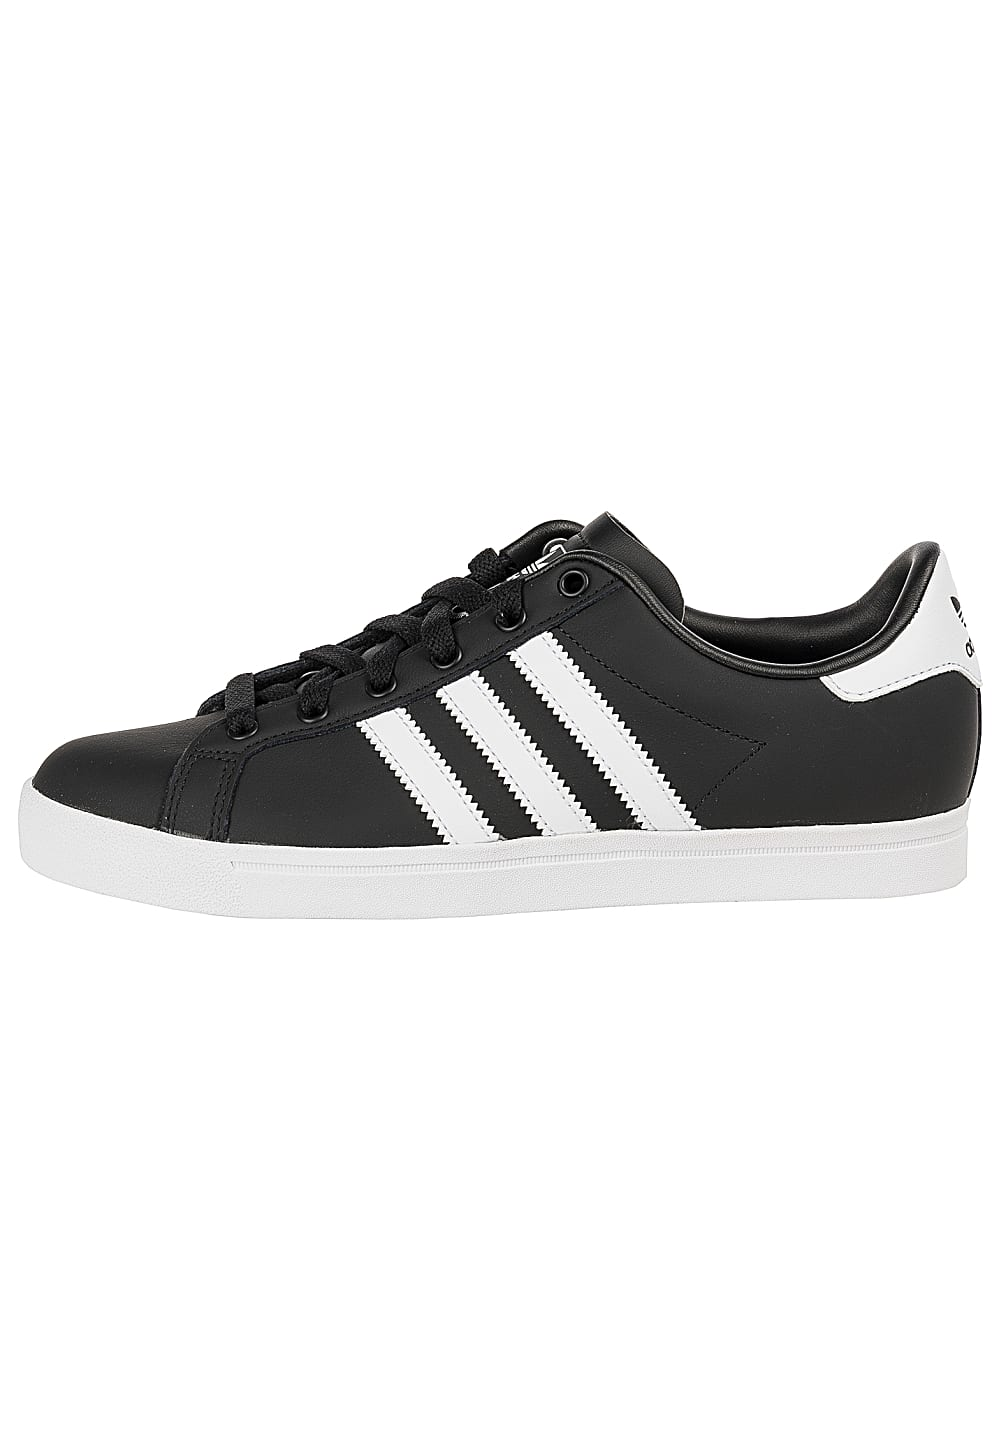 Coast Sports Originals Sneaker Planet Schwarz Adidas Star XZlTwiukOP